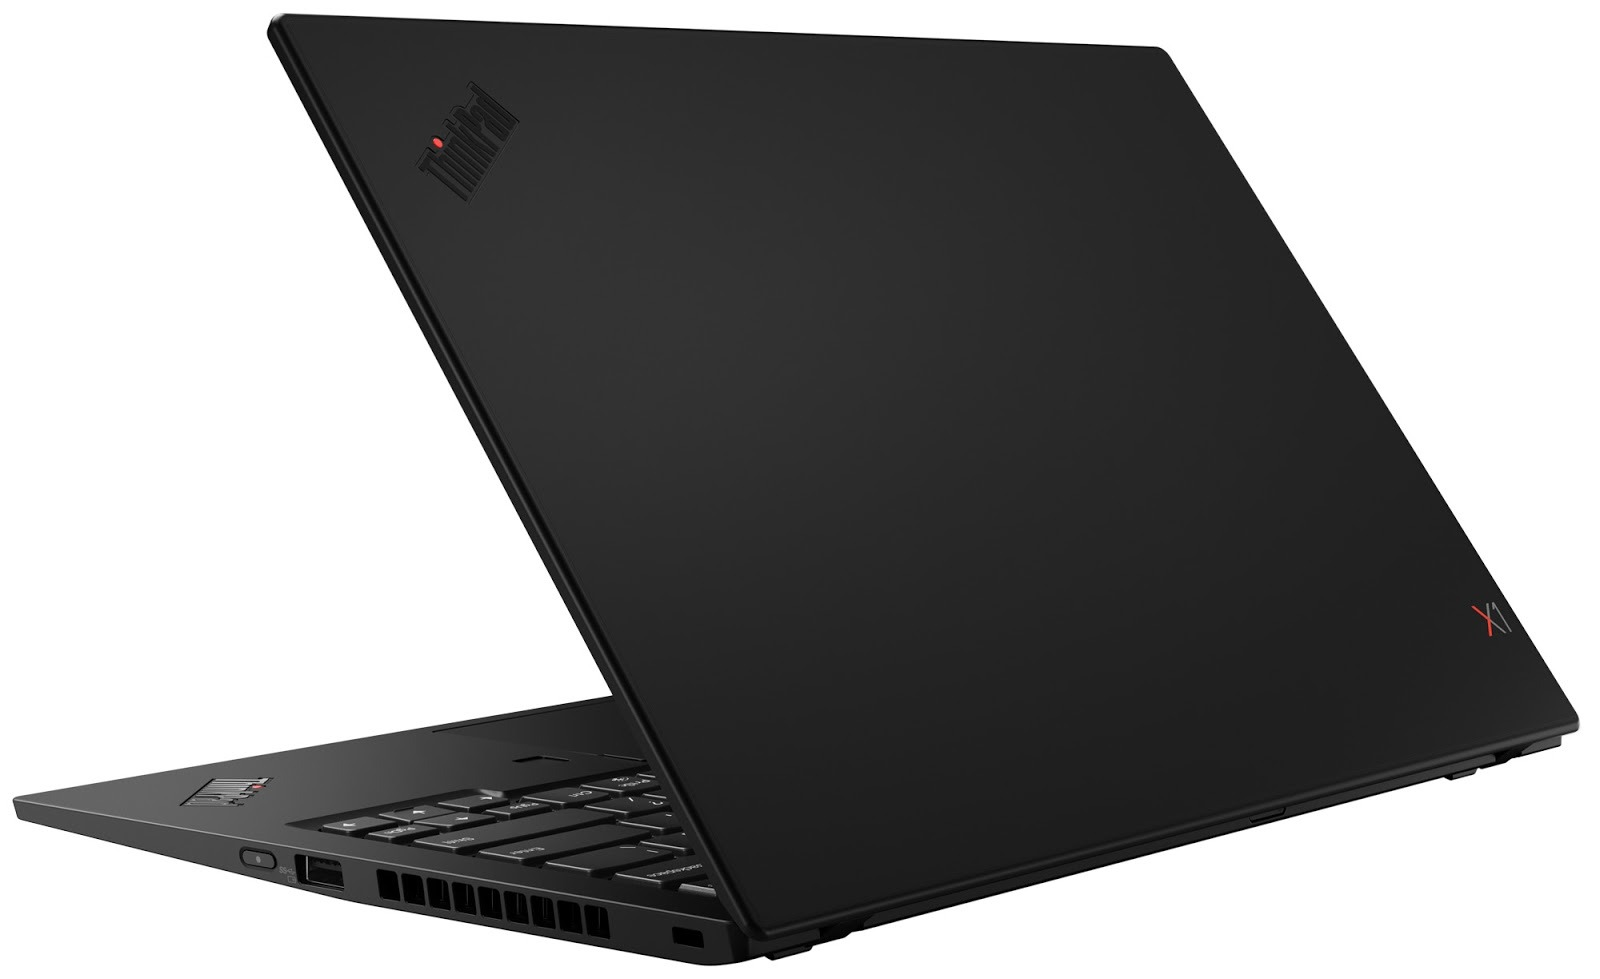 Фото 2. Lenovo ThinkPad X1 Carbon 7th Gen Black (20QD00L3RT)